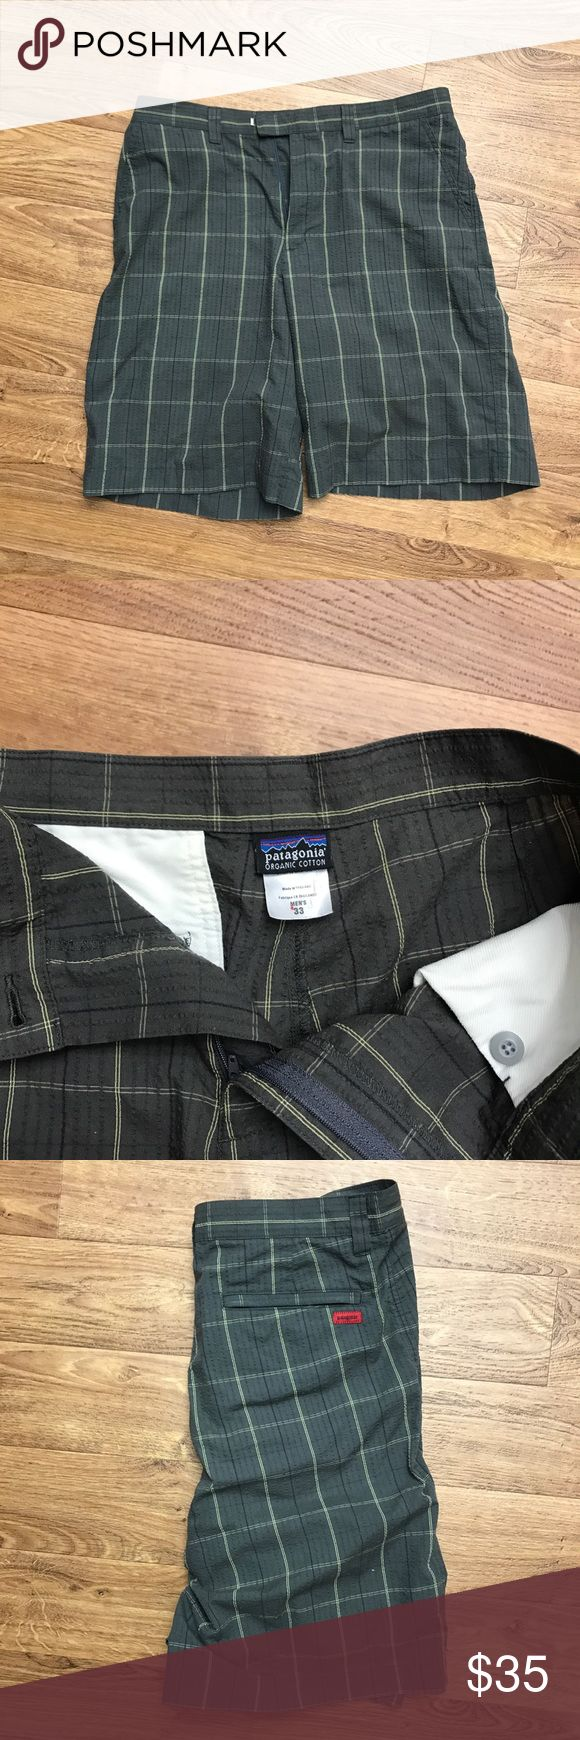 Patagonia Men's Organic Cotton Red Tag shorts. Great shorts. Only flaw is small red dot on size tag (pictured) placed by store to reflect sale item. Bought in a bundle with several other shorts with the elusive Red Tag by patagonia. Patagonia Shorts